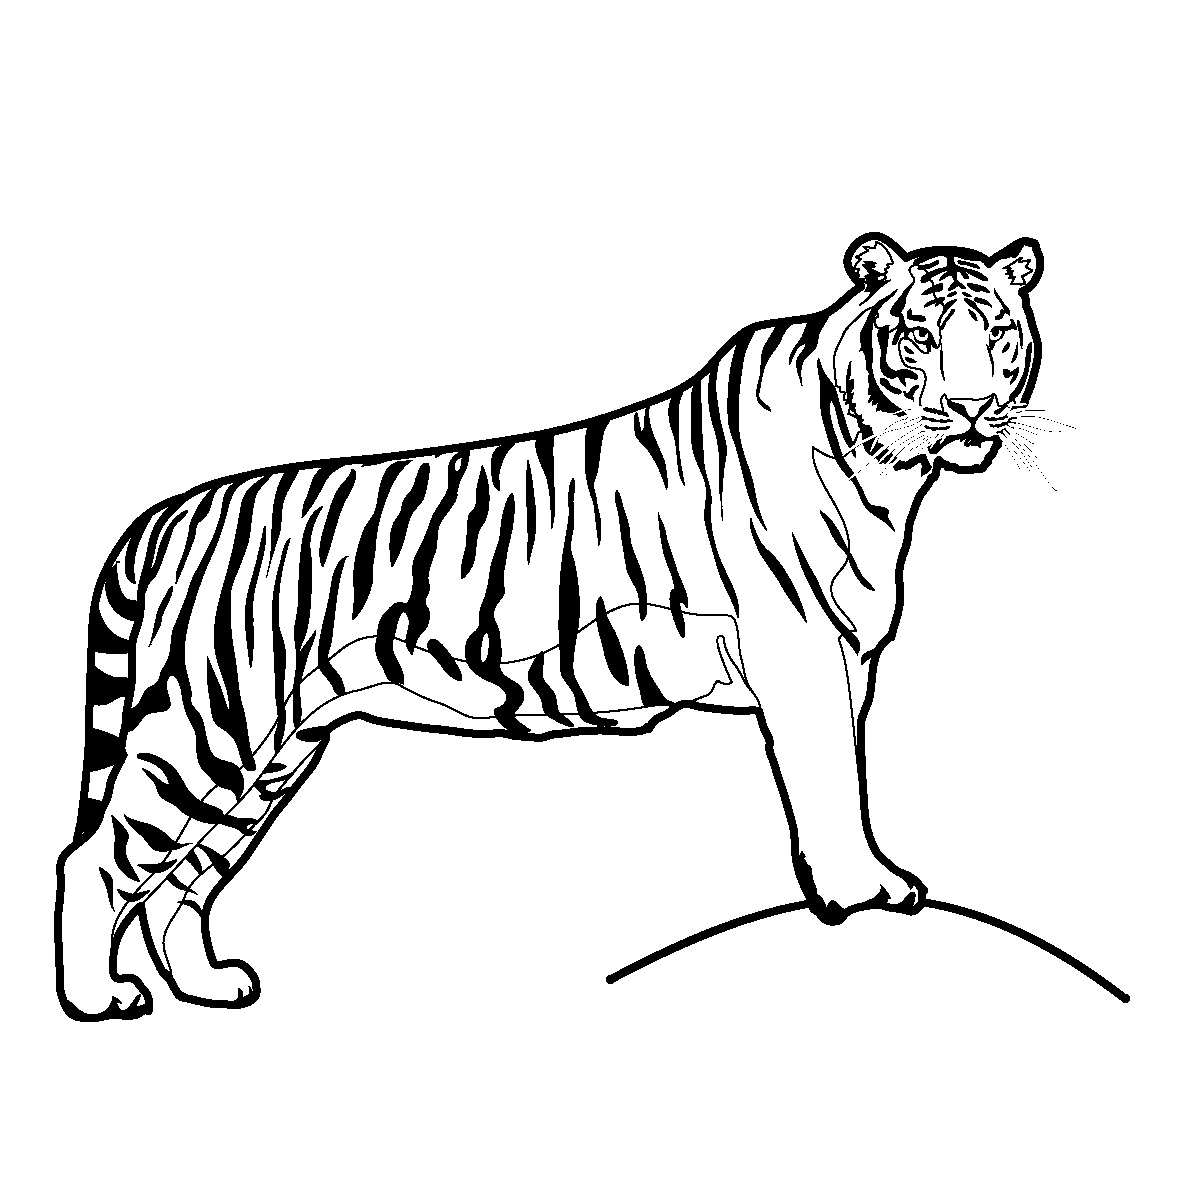 Coloring Pages of Tigers